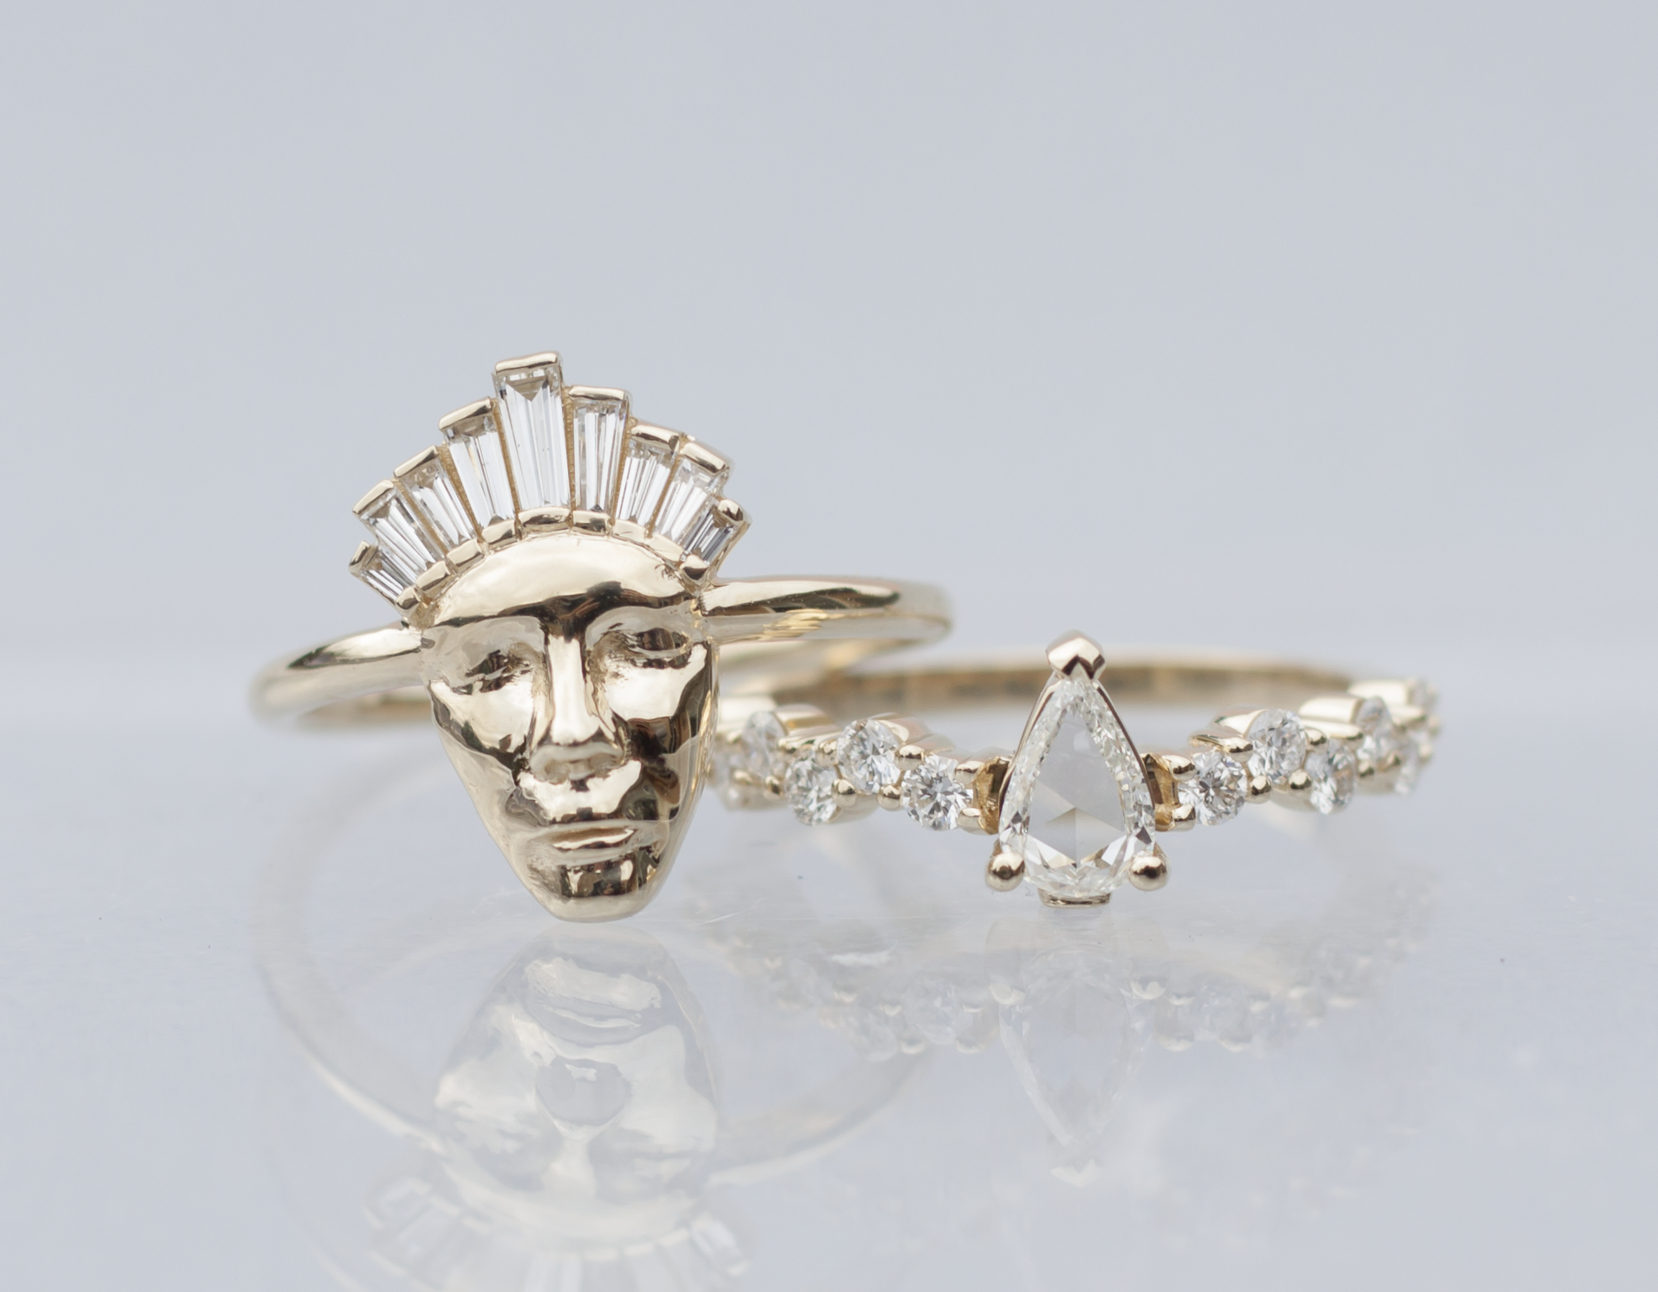 Anastassia Sel Jewelry - Gold Face Ring - Rose Cut Ring - Unique Engagement Ring